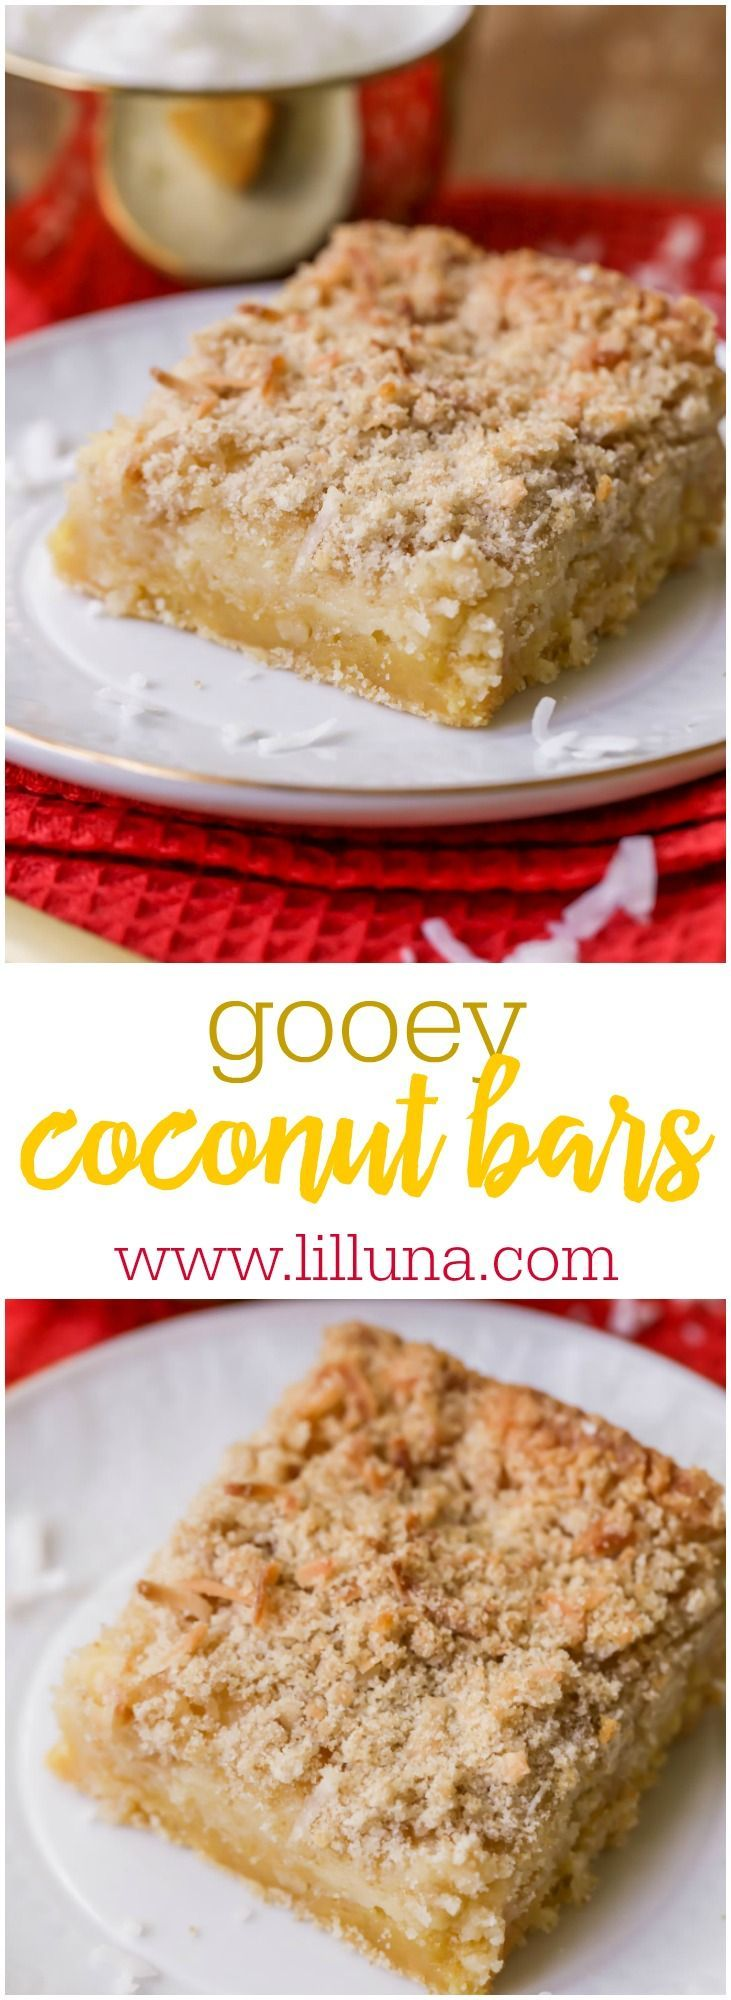 Gooey Coconut Butter Bars - a soft, delicious treat with creamy layers of cake and cream cheese and just the right amount of coconut.